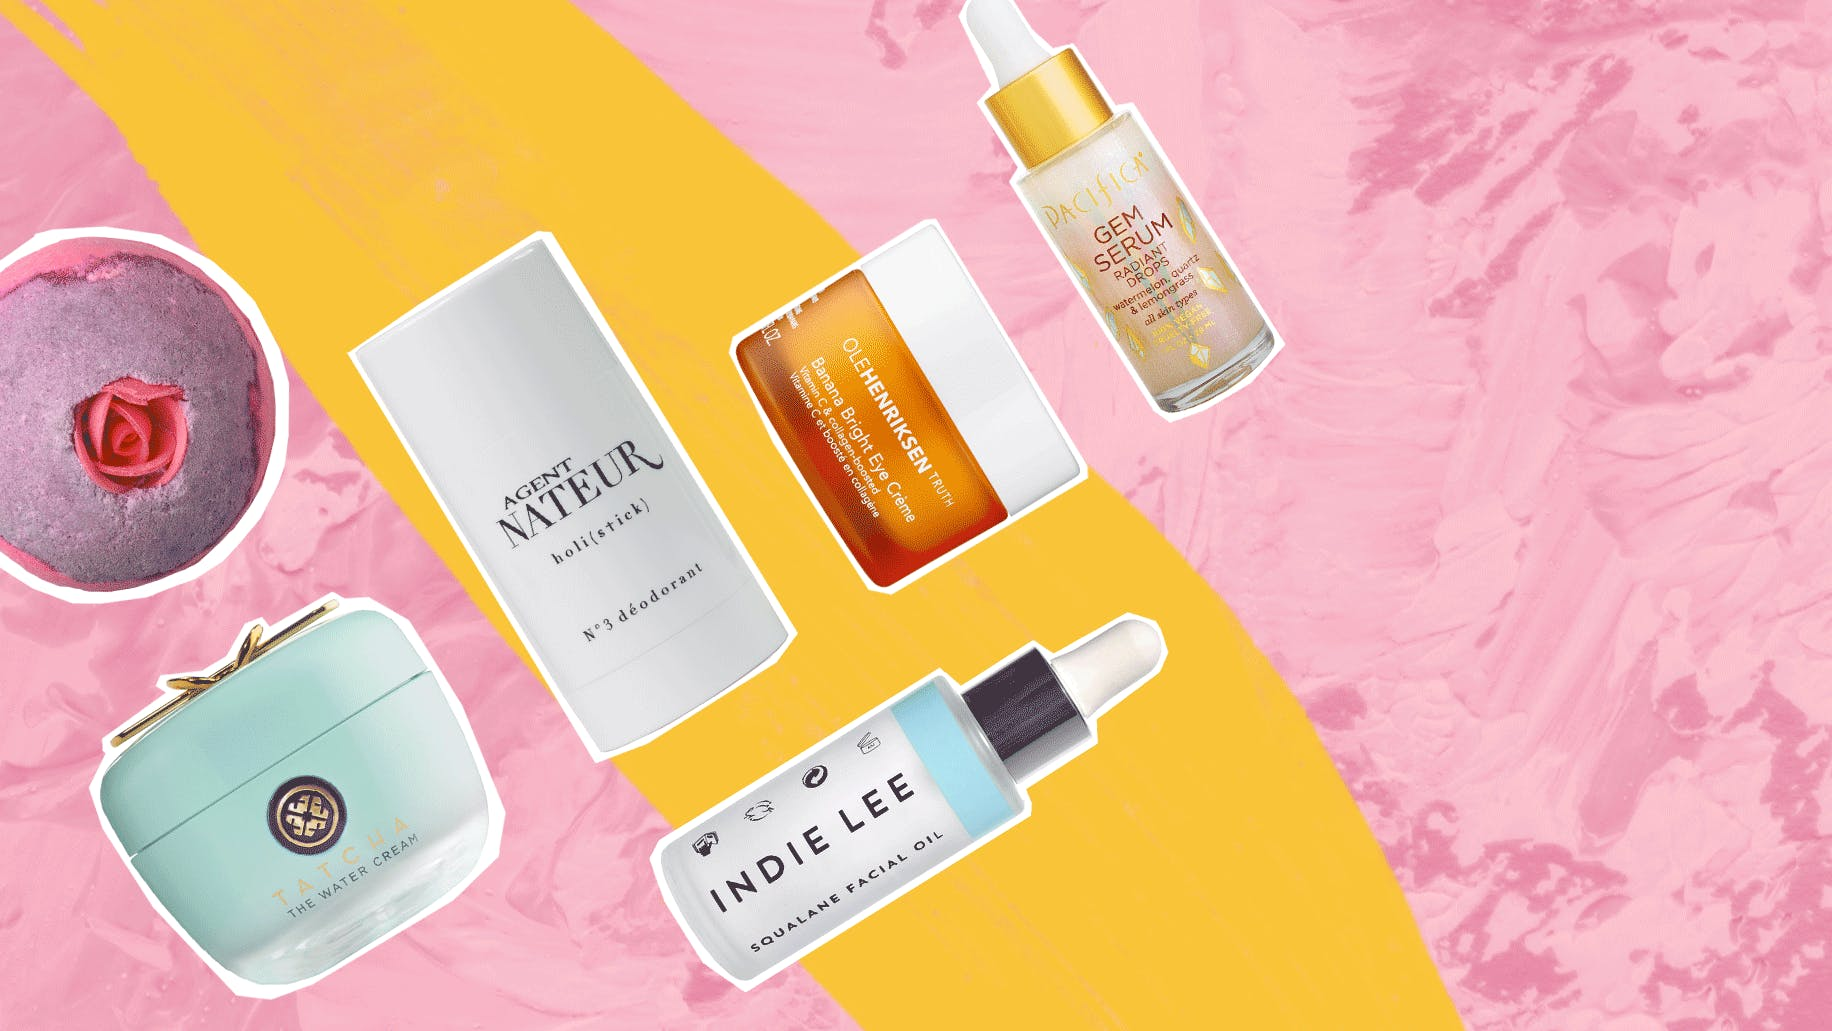 The 11 Best Cruelty Free Skincare Buys That Get The Job Done